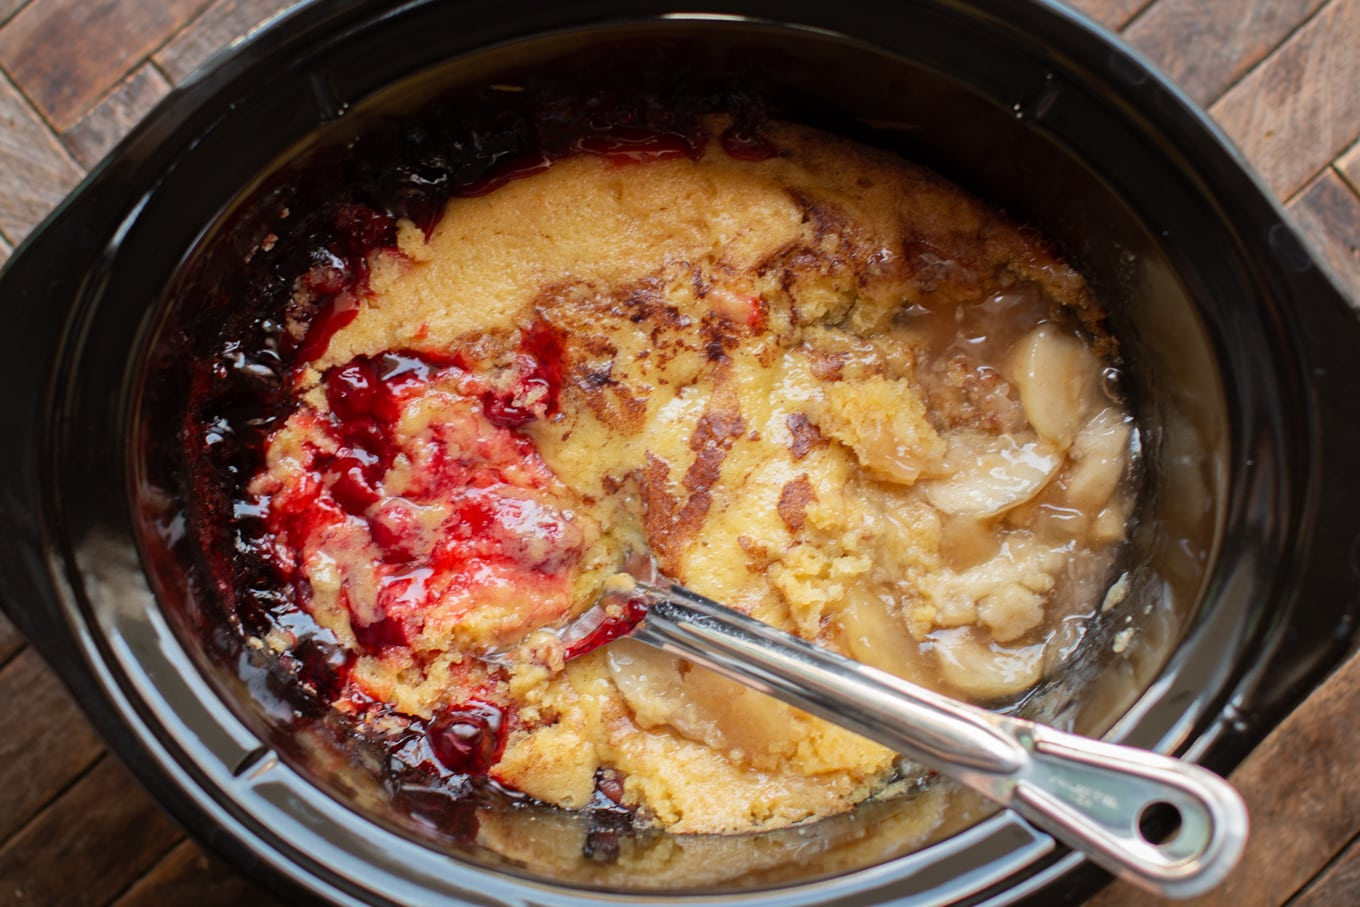 Spoon in cherry and apple cobbler in slow cooker.